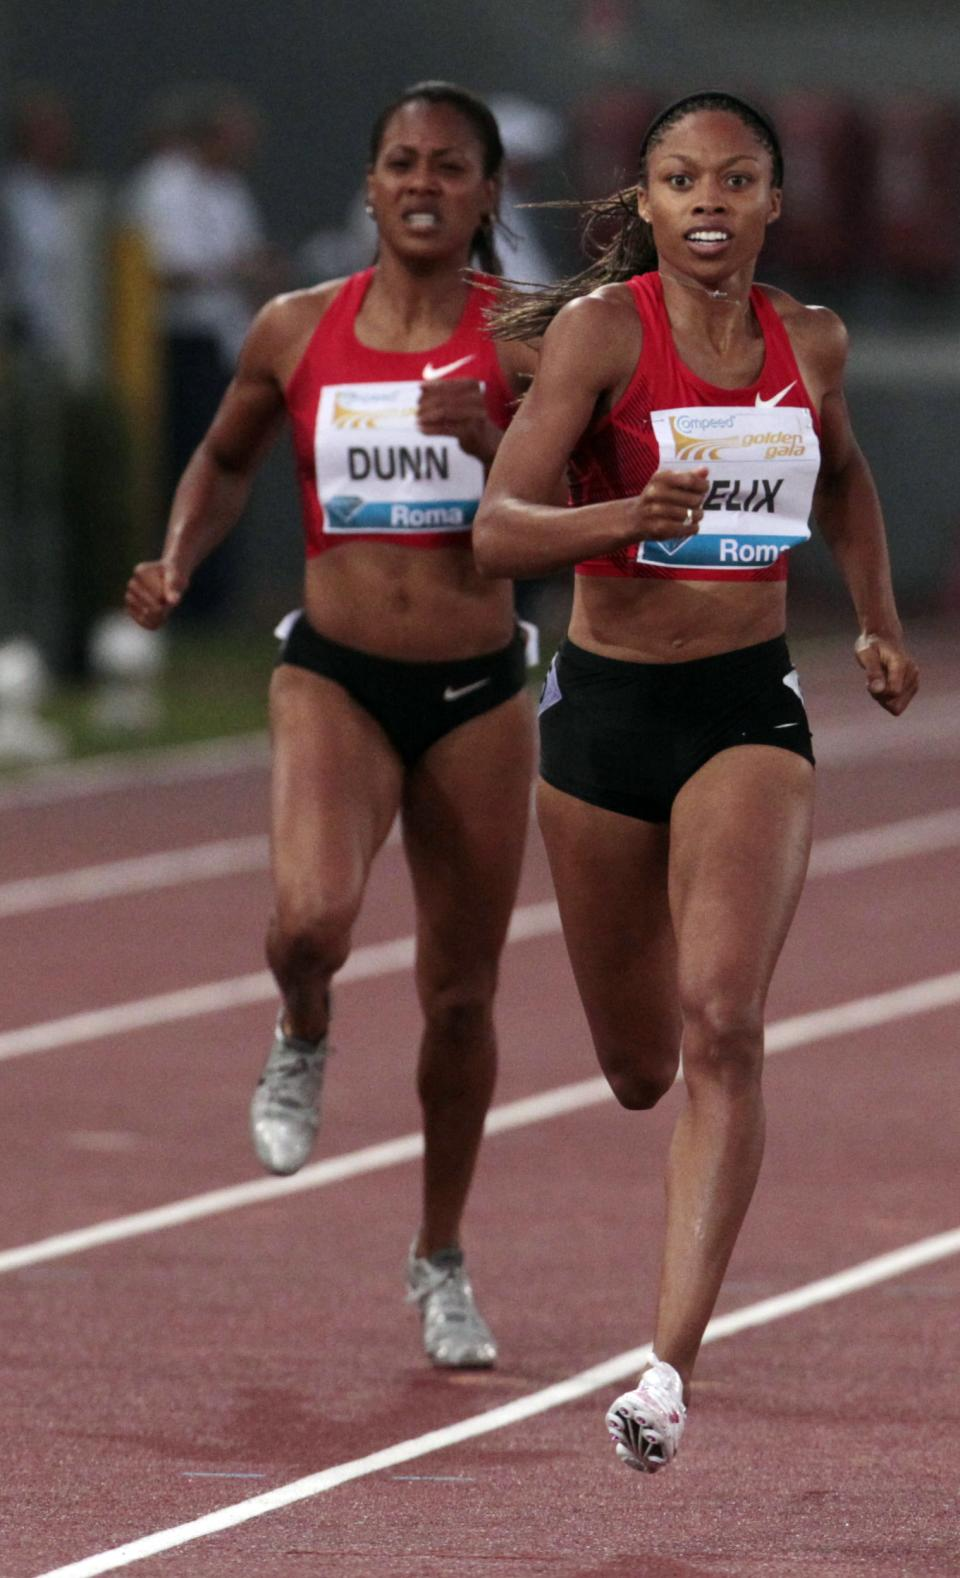 U.S. Allyson Felix, right, competes on her way to win the women's 400m event at the Golden Gala athletics meeting, in Rome, Thursday, May 26, 2011. (AP Photo/Gregorio Borgia)